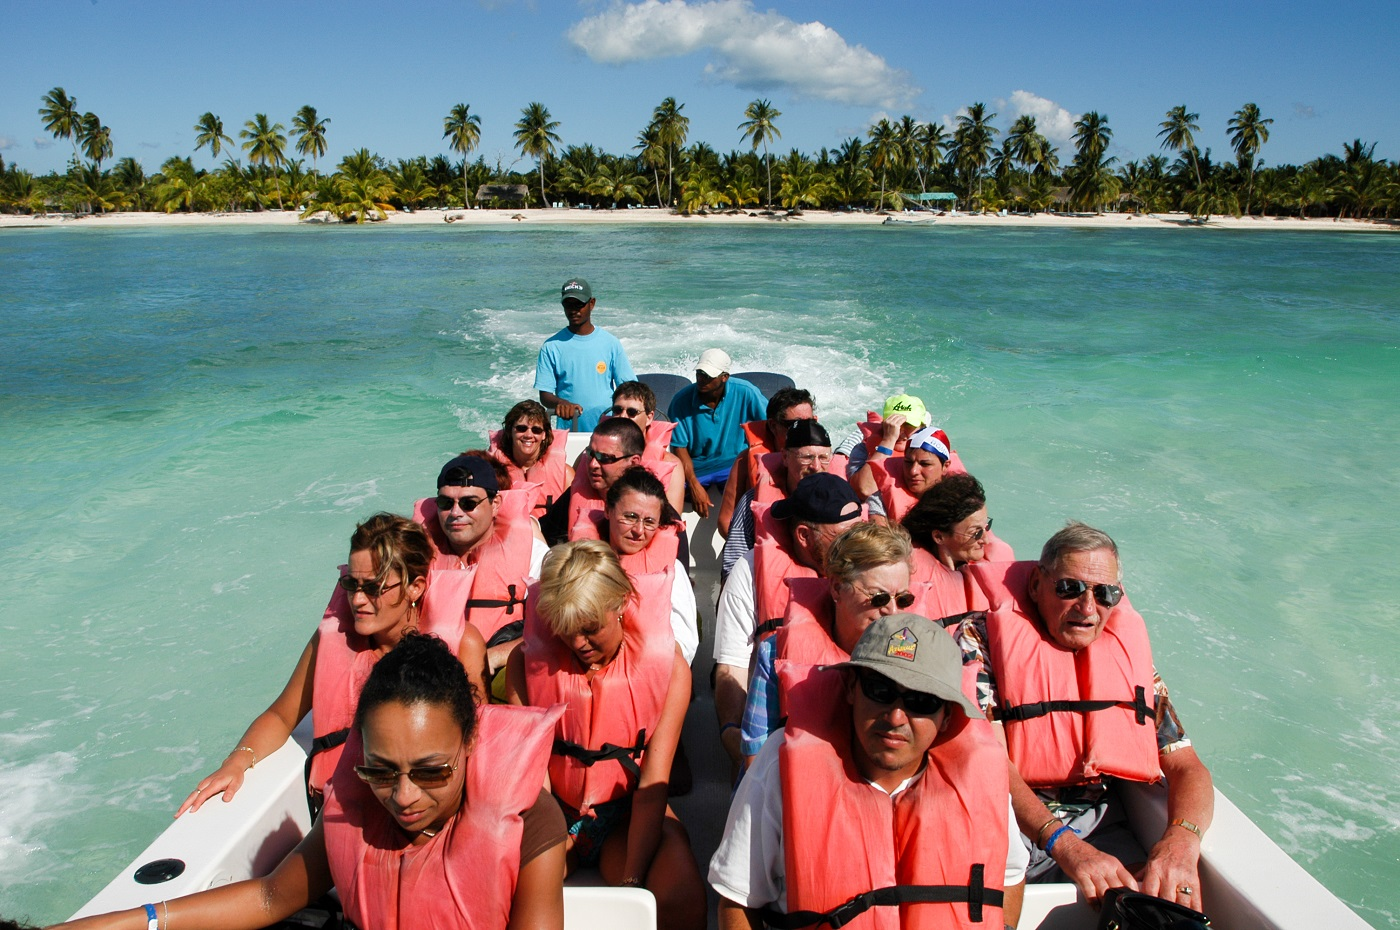 Boat Ride - How To Get to Saona Island